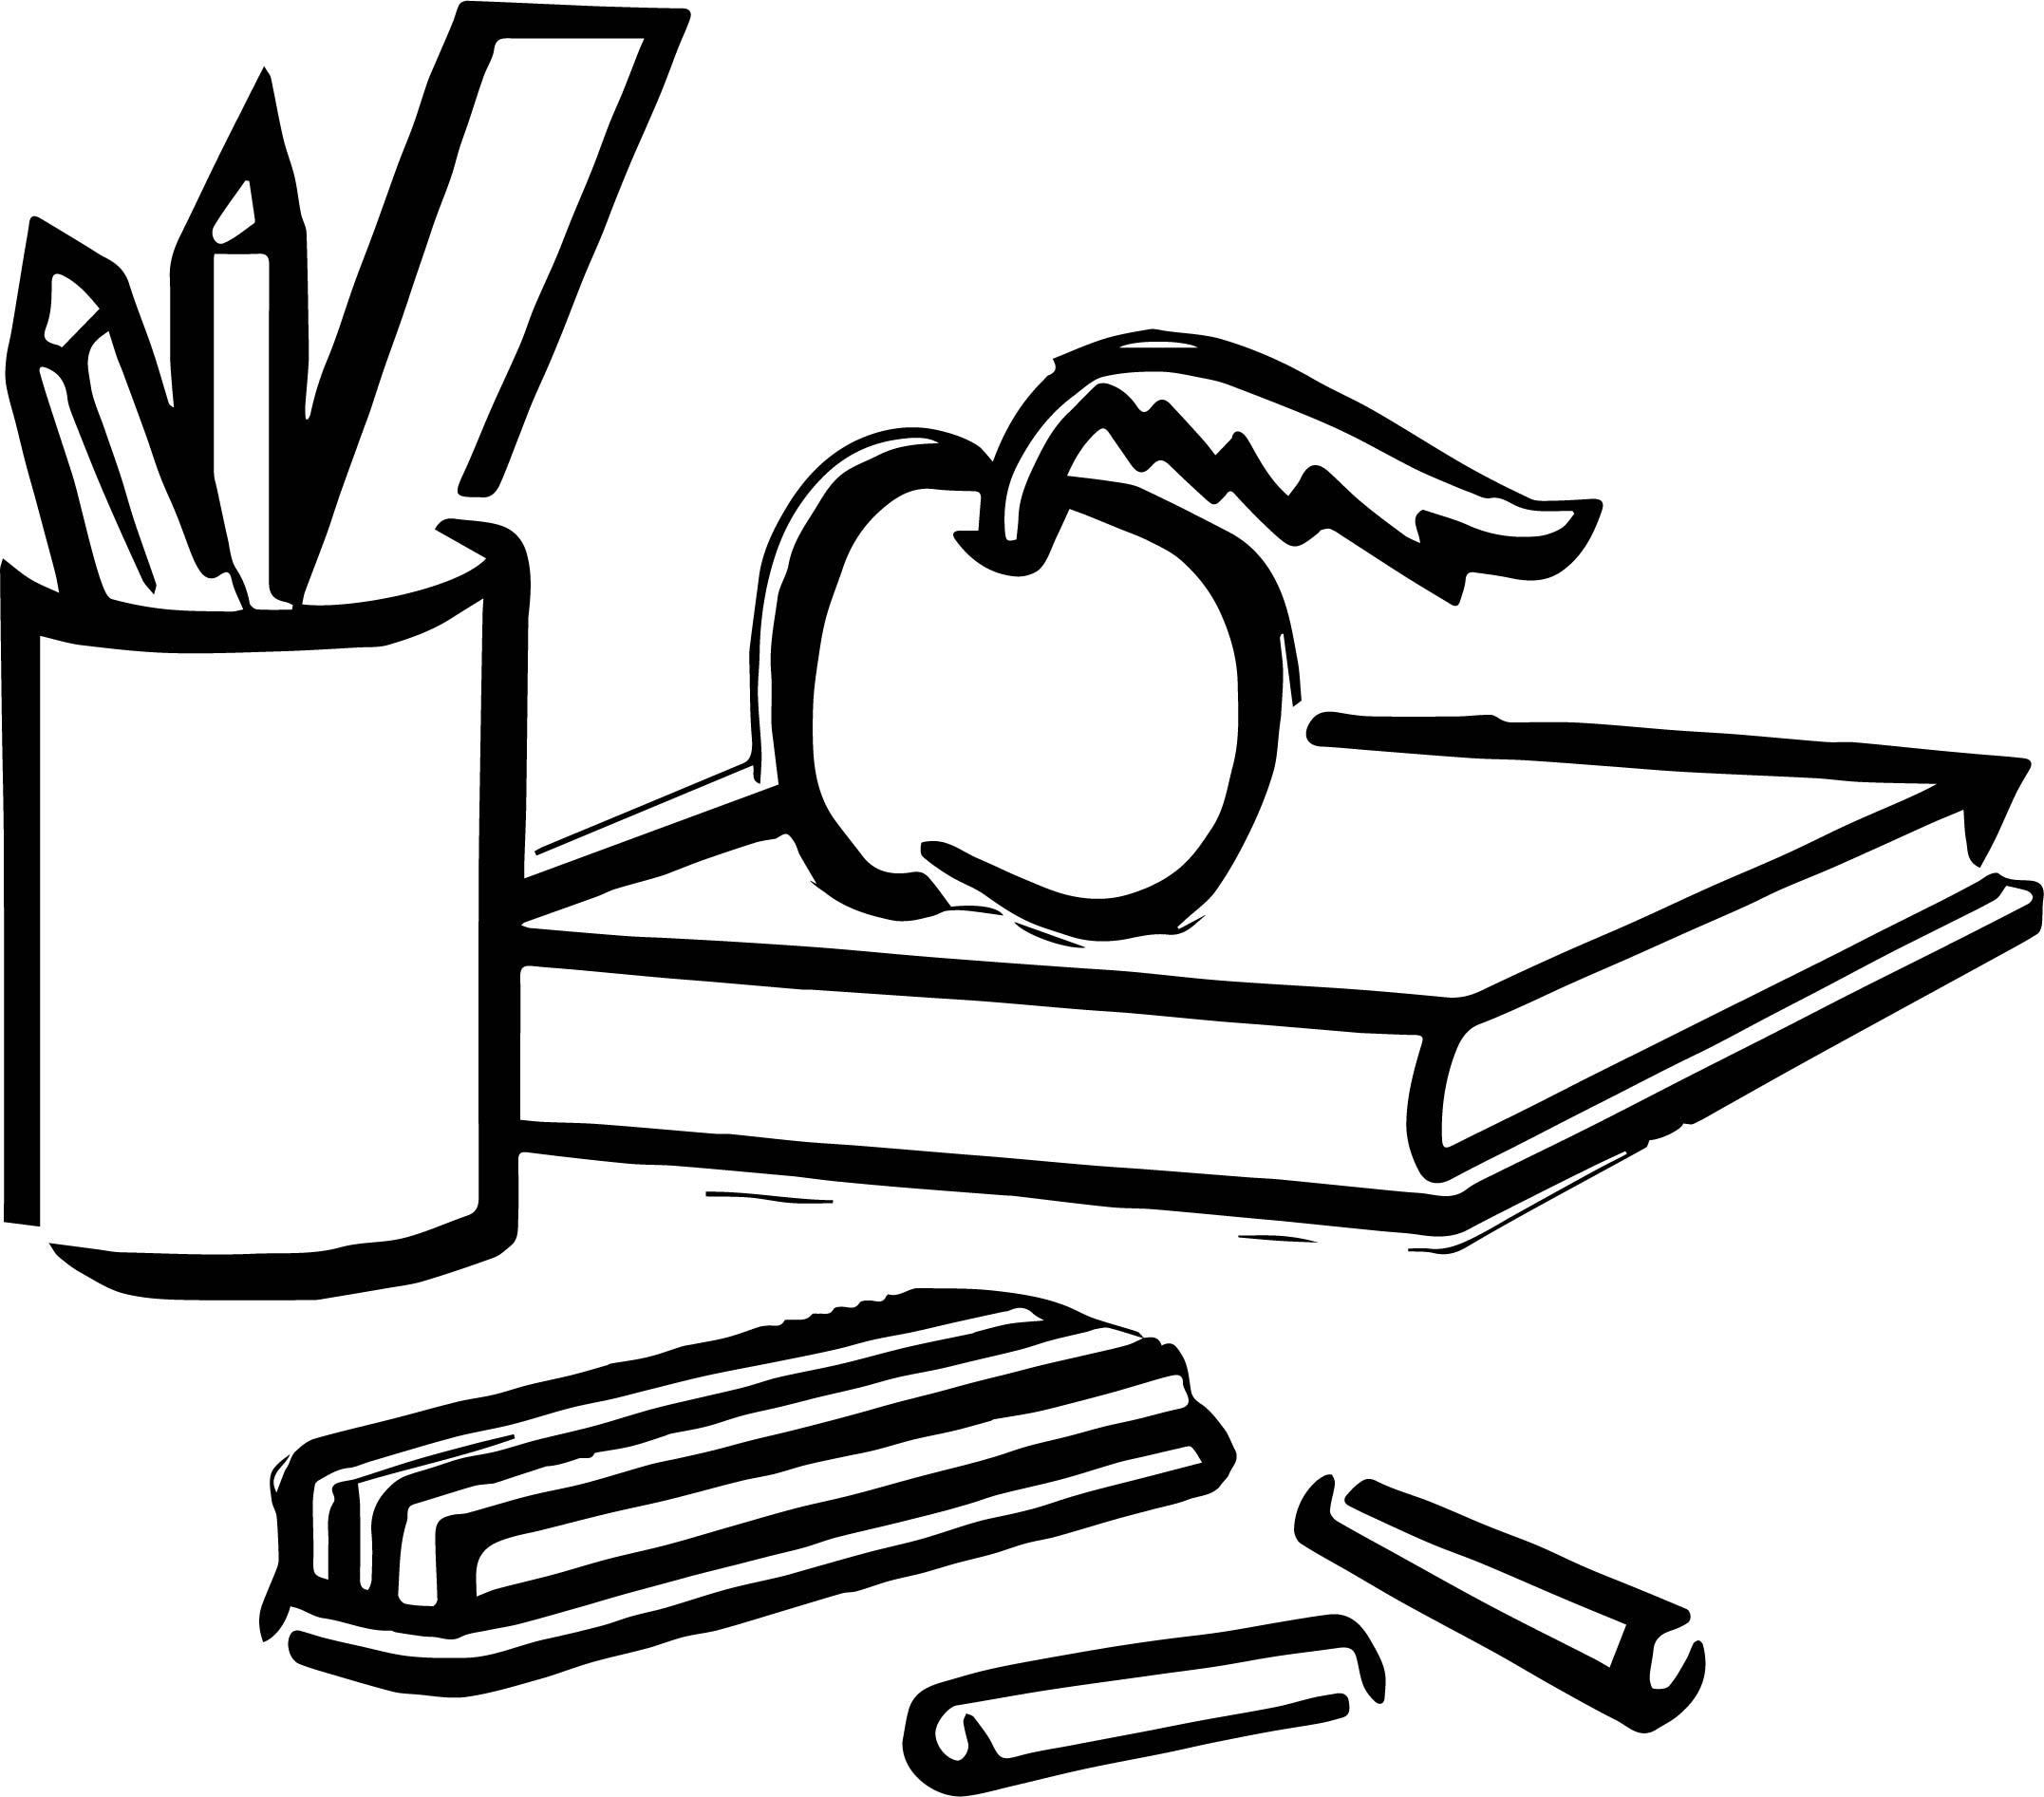 school objects coloring pages any misc school objects coloring page wecoloringpagecom school objects coloring pages